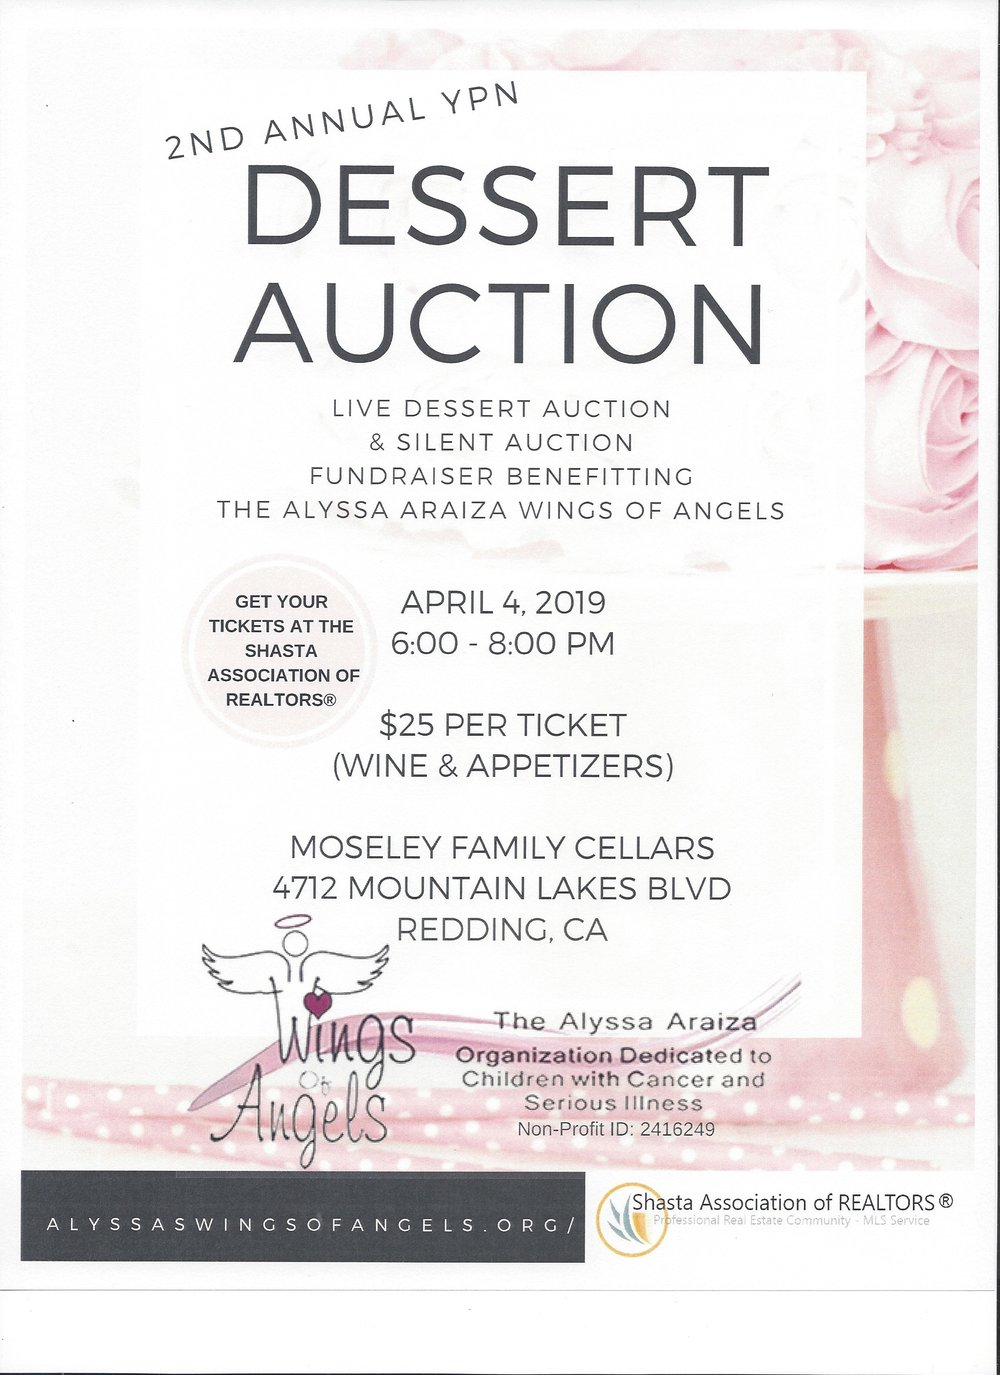 19-03-06;YPN Dessert Auction 2019.jpg